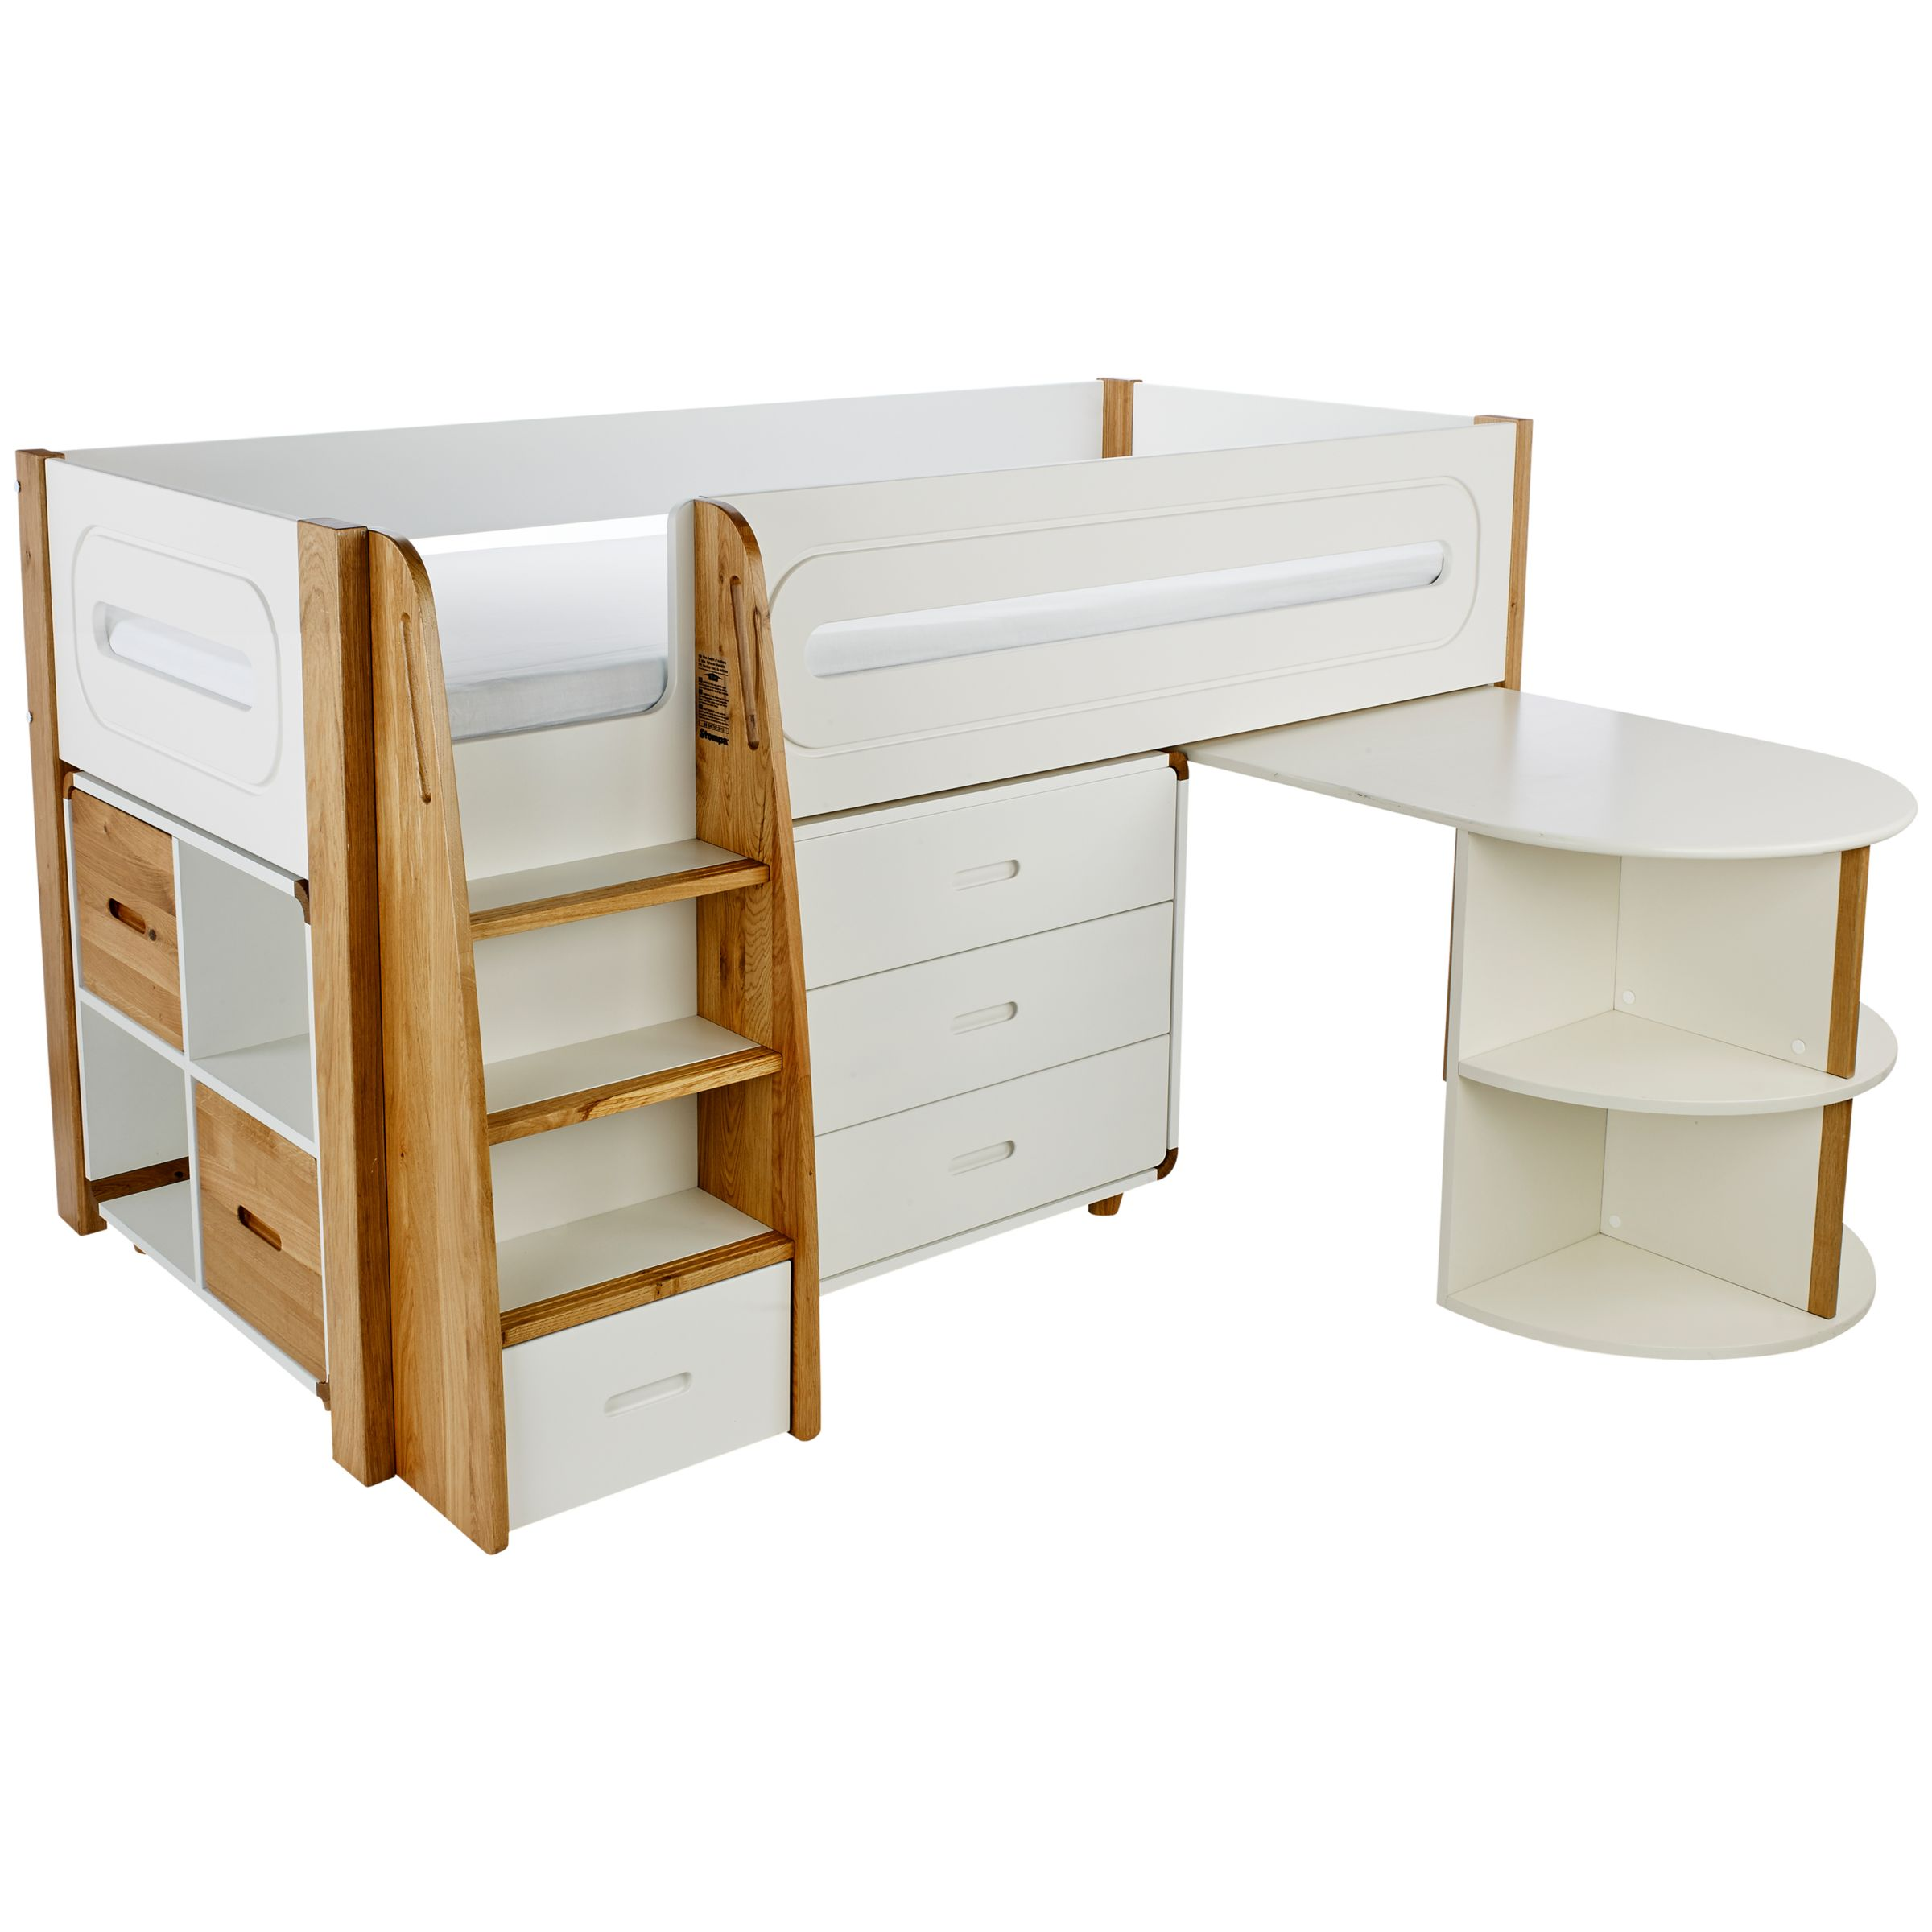 Stompa Stompa Curve Mid-Sleeper Bed with Pull-Out Desk, 3 Drawer Chest and 2 Door Cube Unit, Silk White / Oak